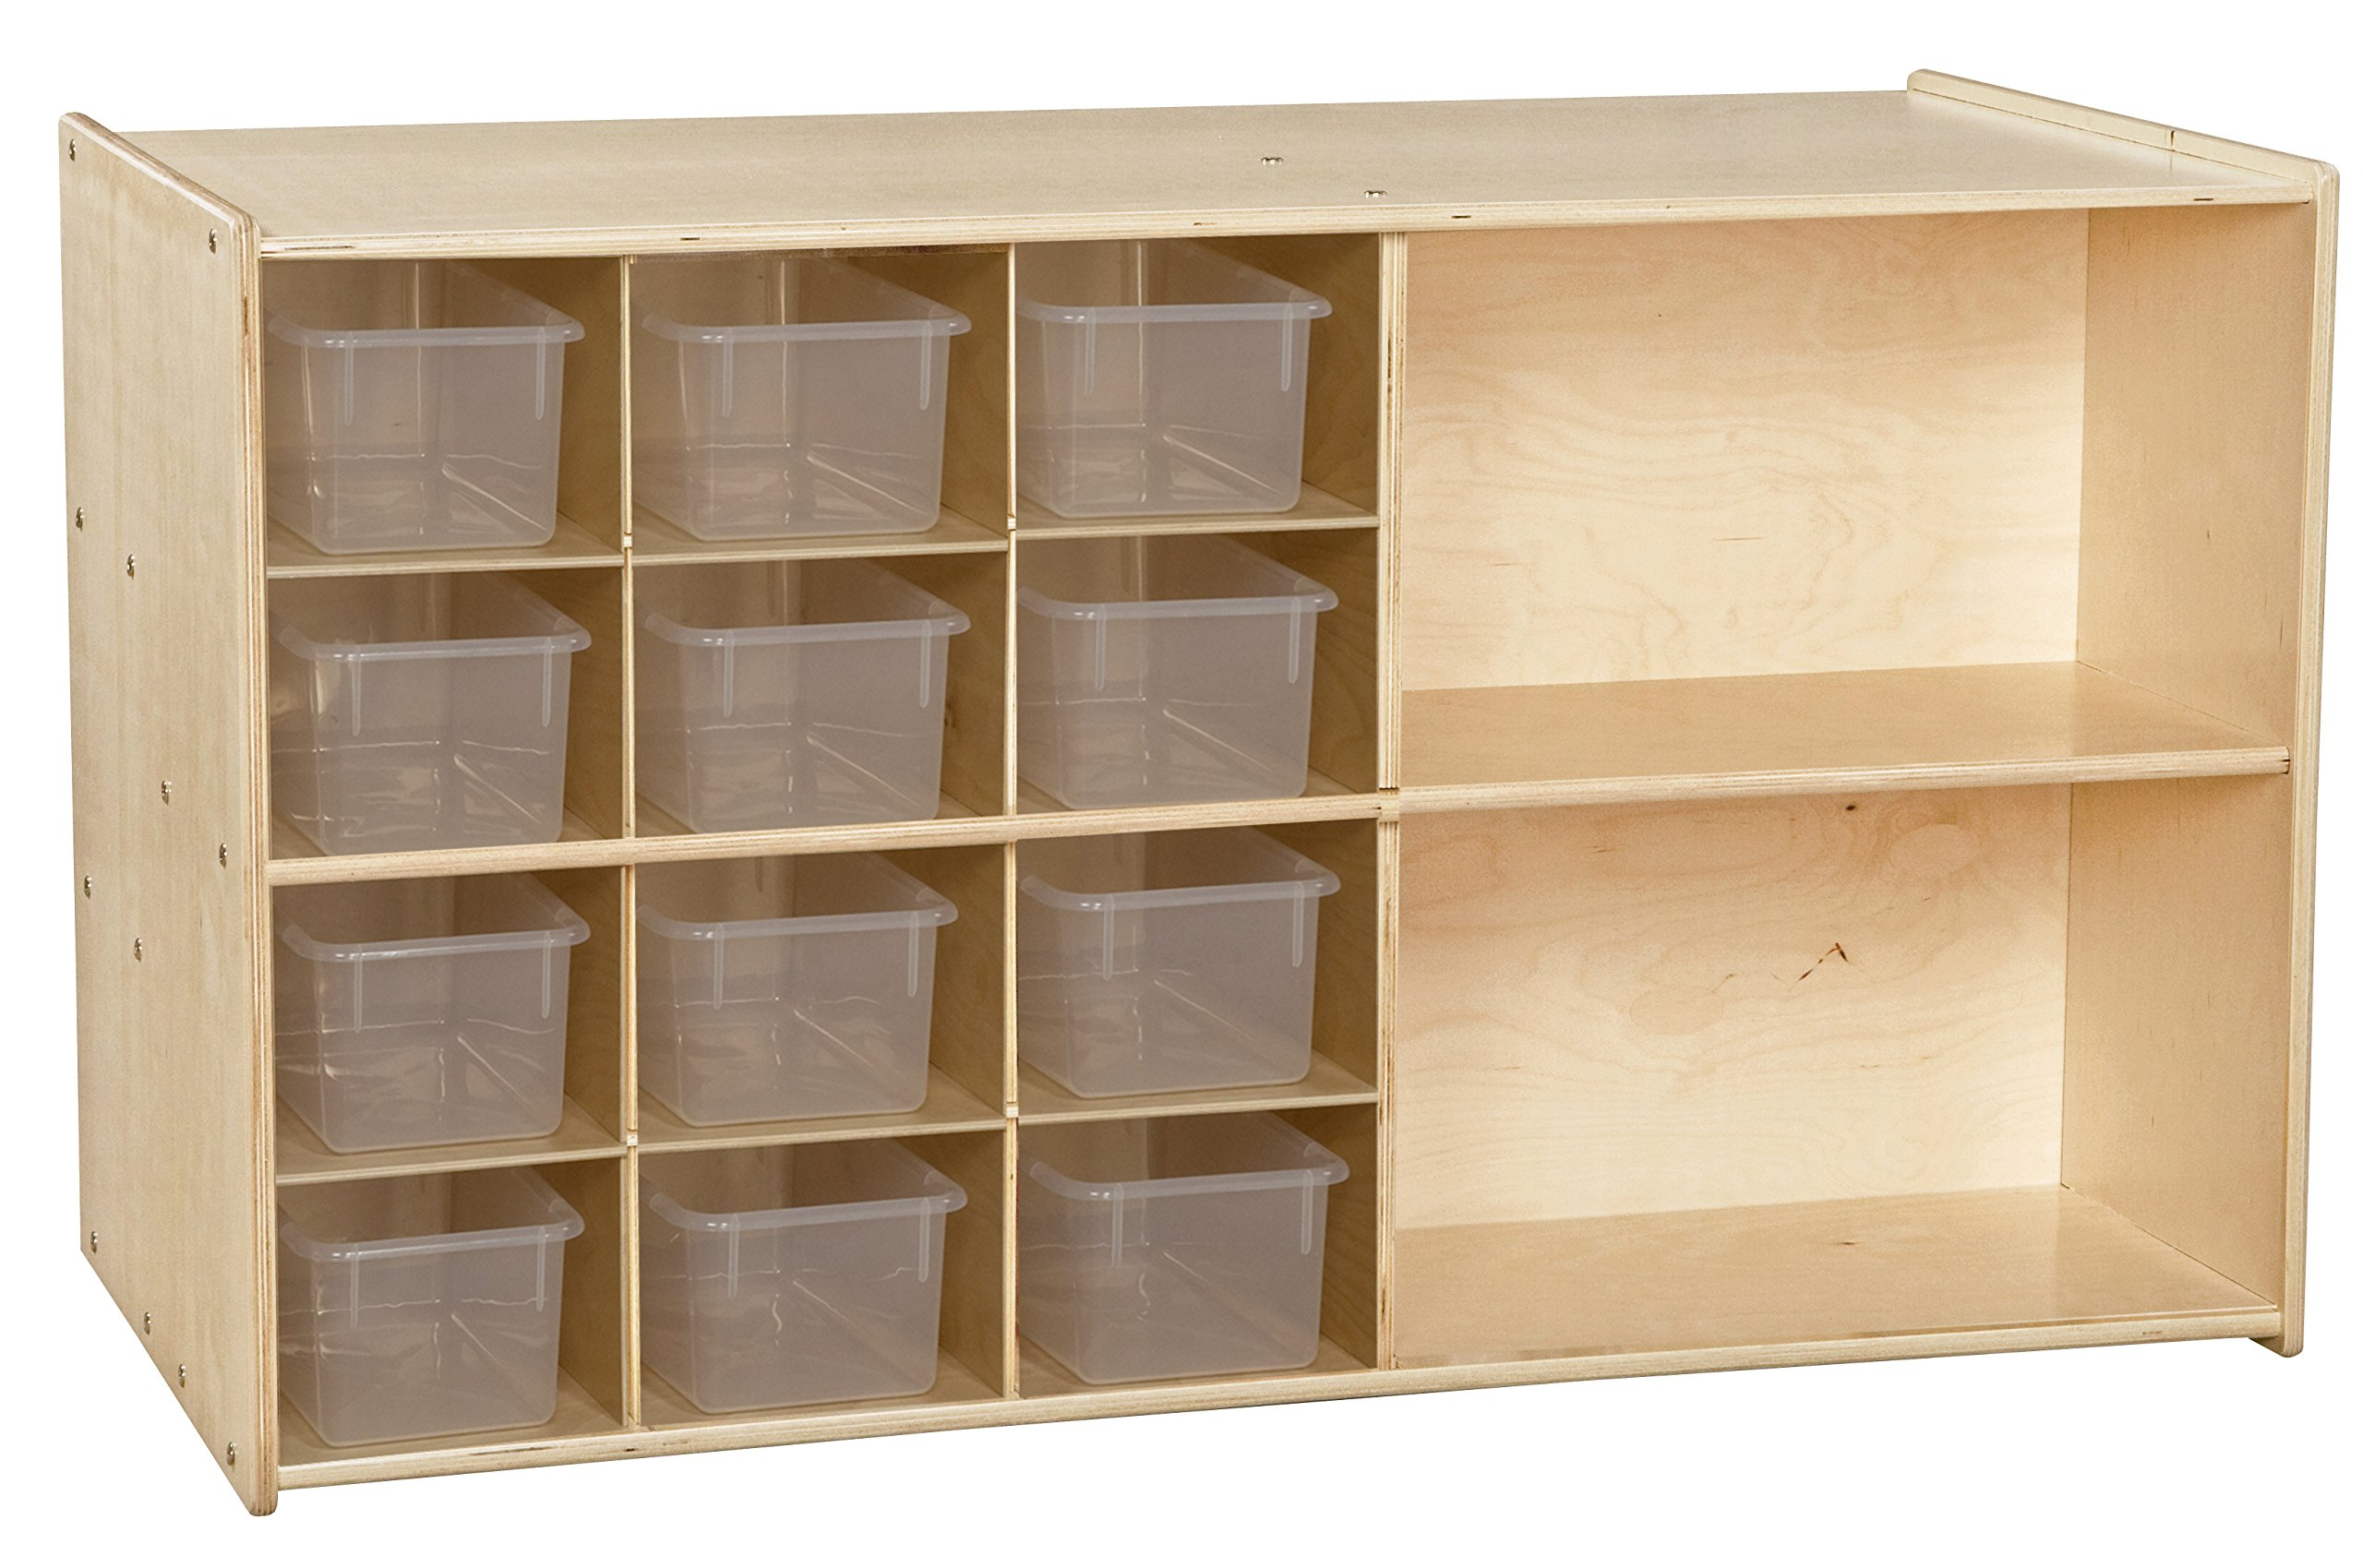 Contender C16601F Double Storage with 12 Translucent Trays, Assembled